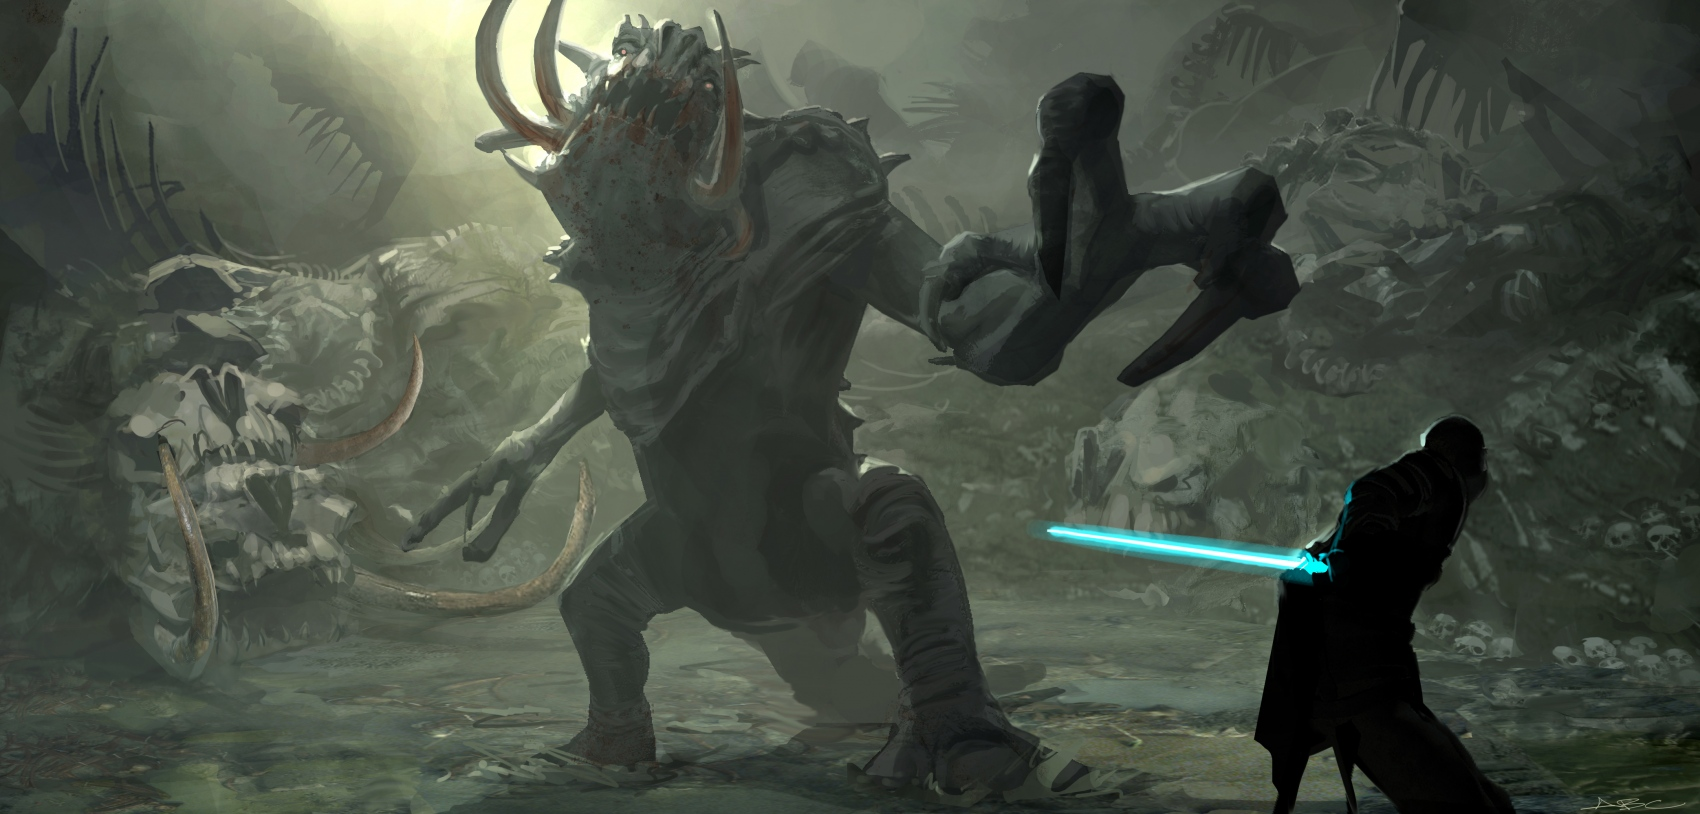 The Force Unleashed - ART BY ABC